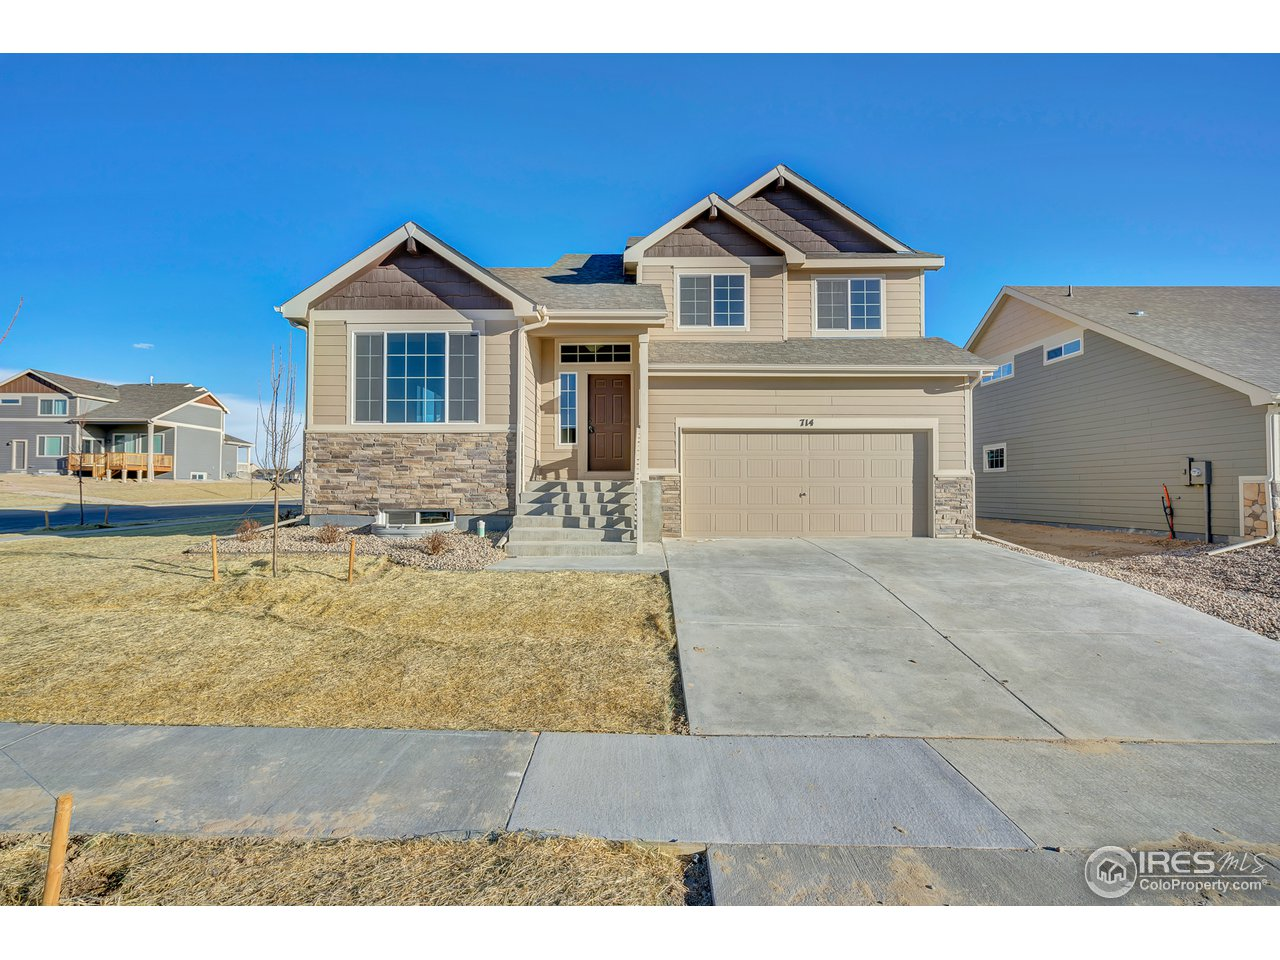 8843 16th St Rd, Greeley CO 80634